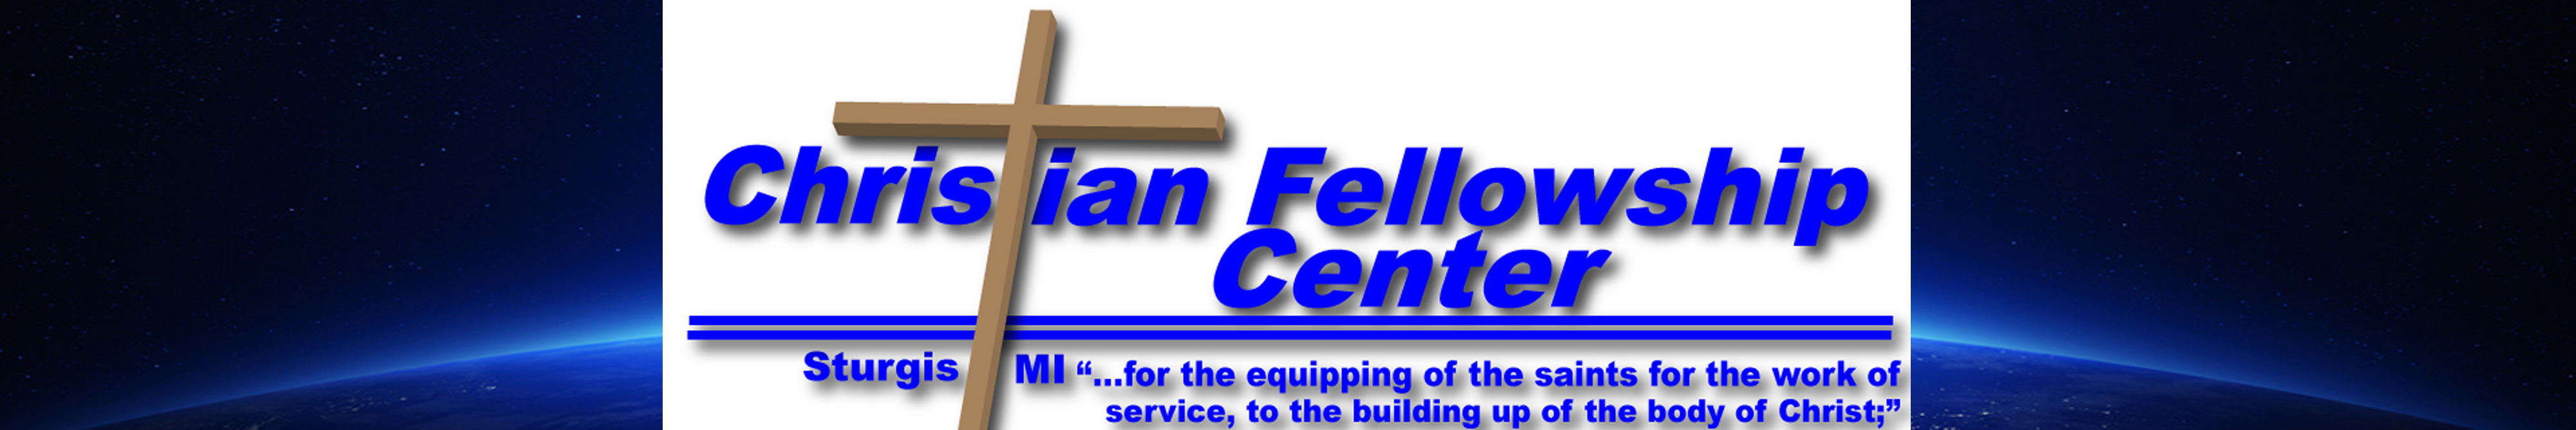 Christian Fellowship Center